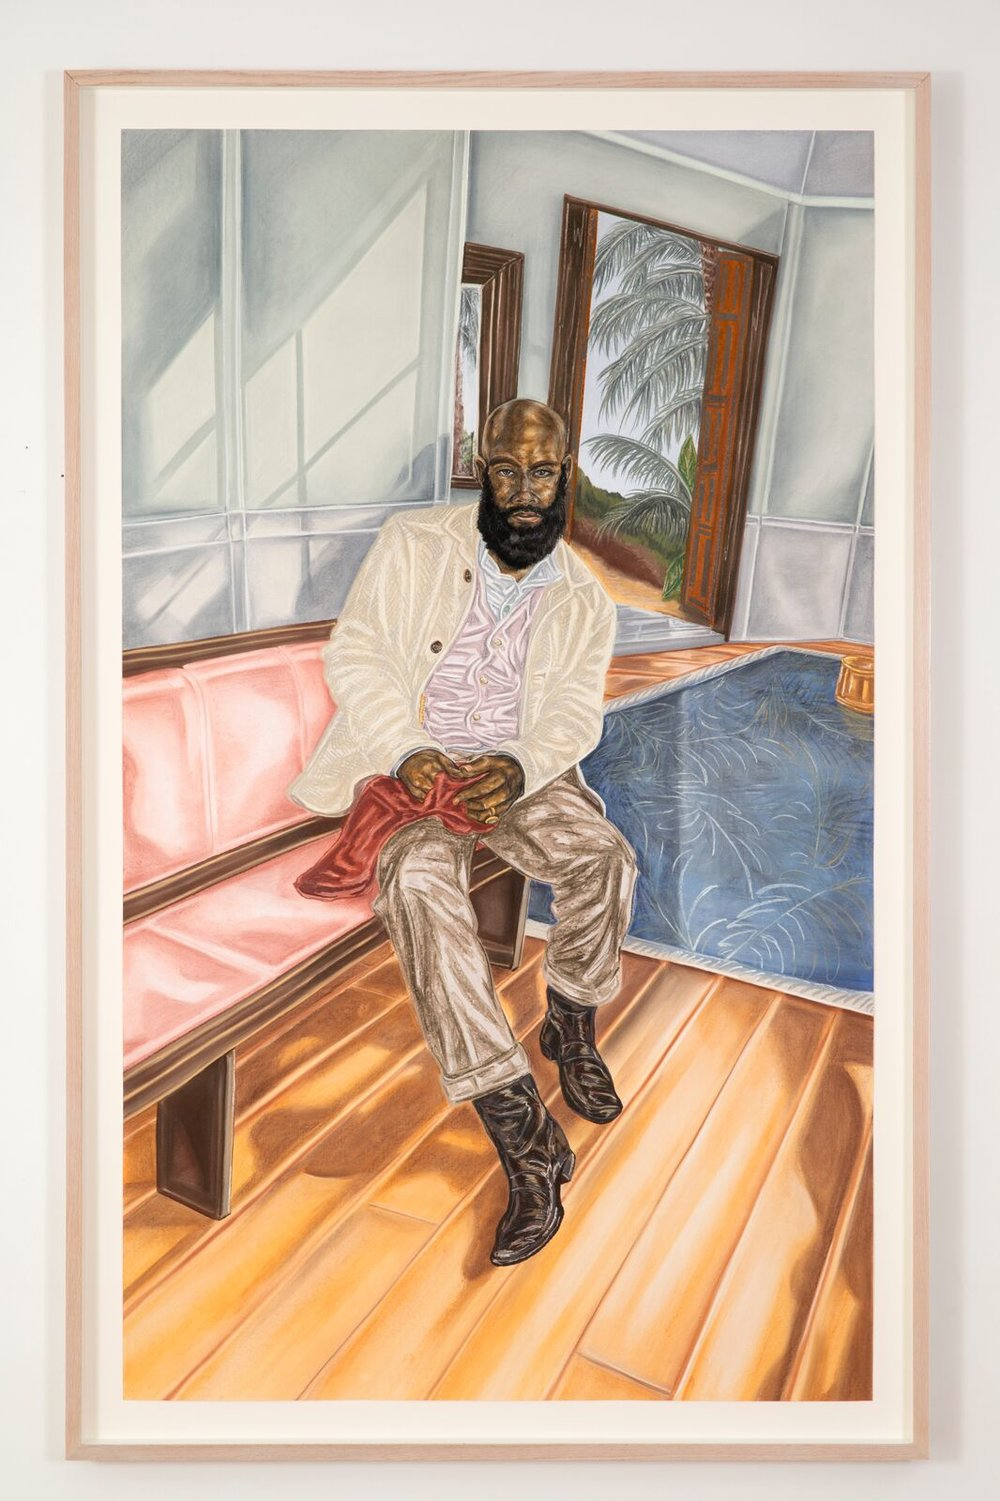 Toyin Ojih Odutola (b. 1985), Years Later - Her Scarf, 2017. Charcoal, pastel and pencil on paper, 72 x 42 in. ©Toyin Ojih Odutola.  Courtesy of the artist and Jack Shainman Gallery, New York